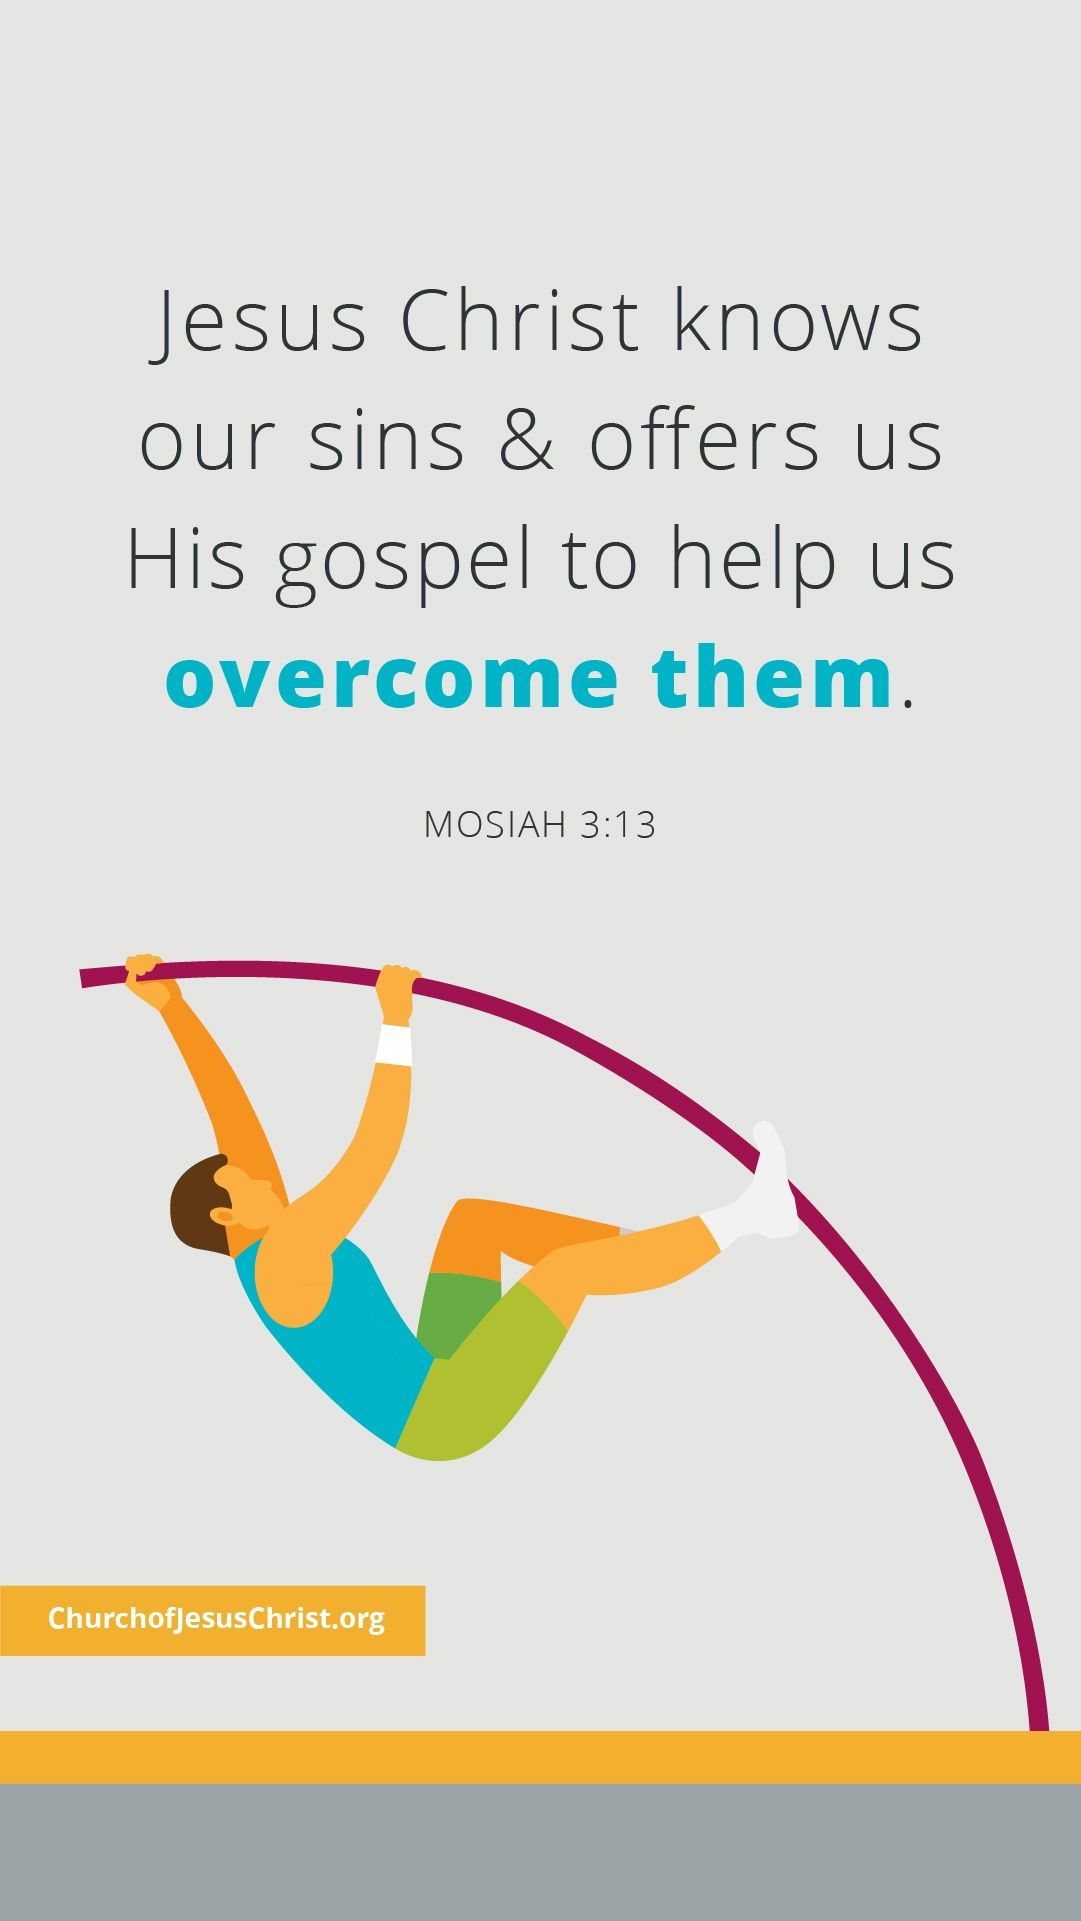 Jesus Christ knows our sins and offers us His gospel to help us overcome them. — See Mosiah 3:13